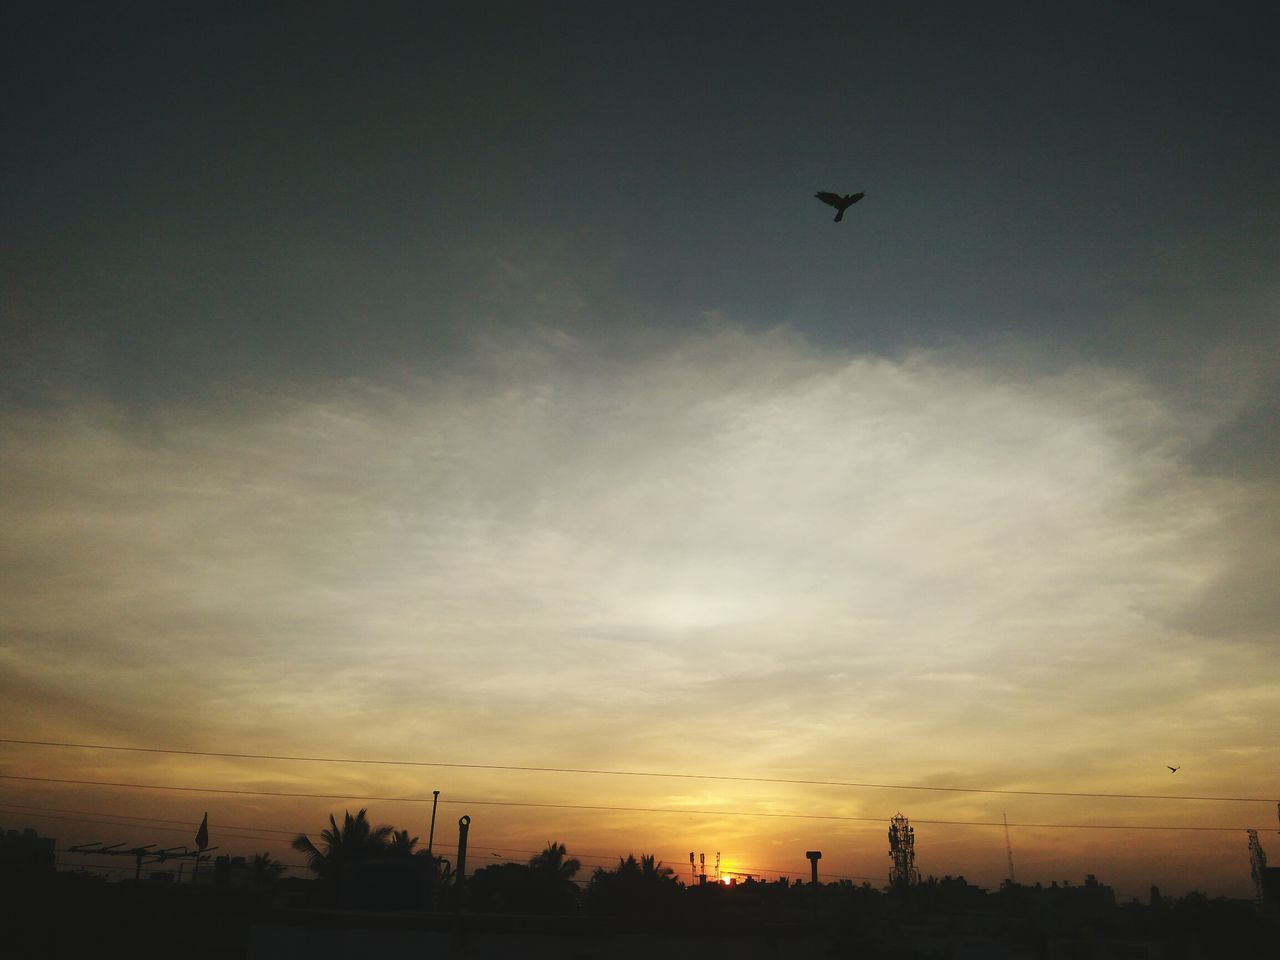 flying, sunset, silhouette, sky, no people, airplane, low angle view, outdoors, nature, bird, tree, day